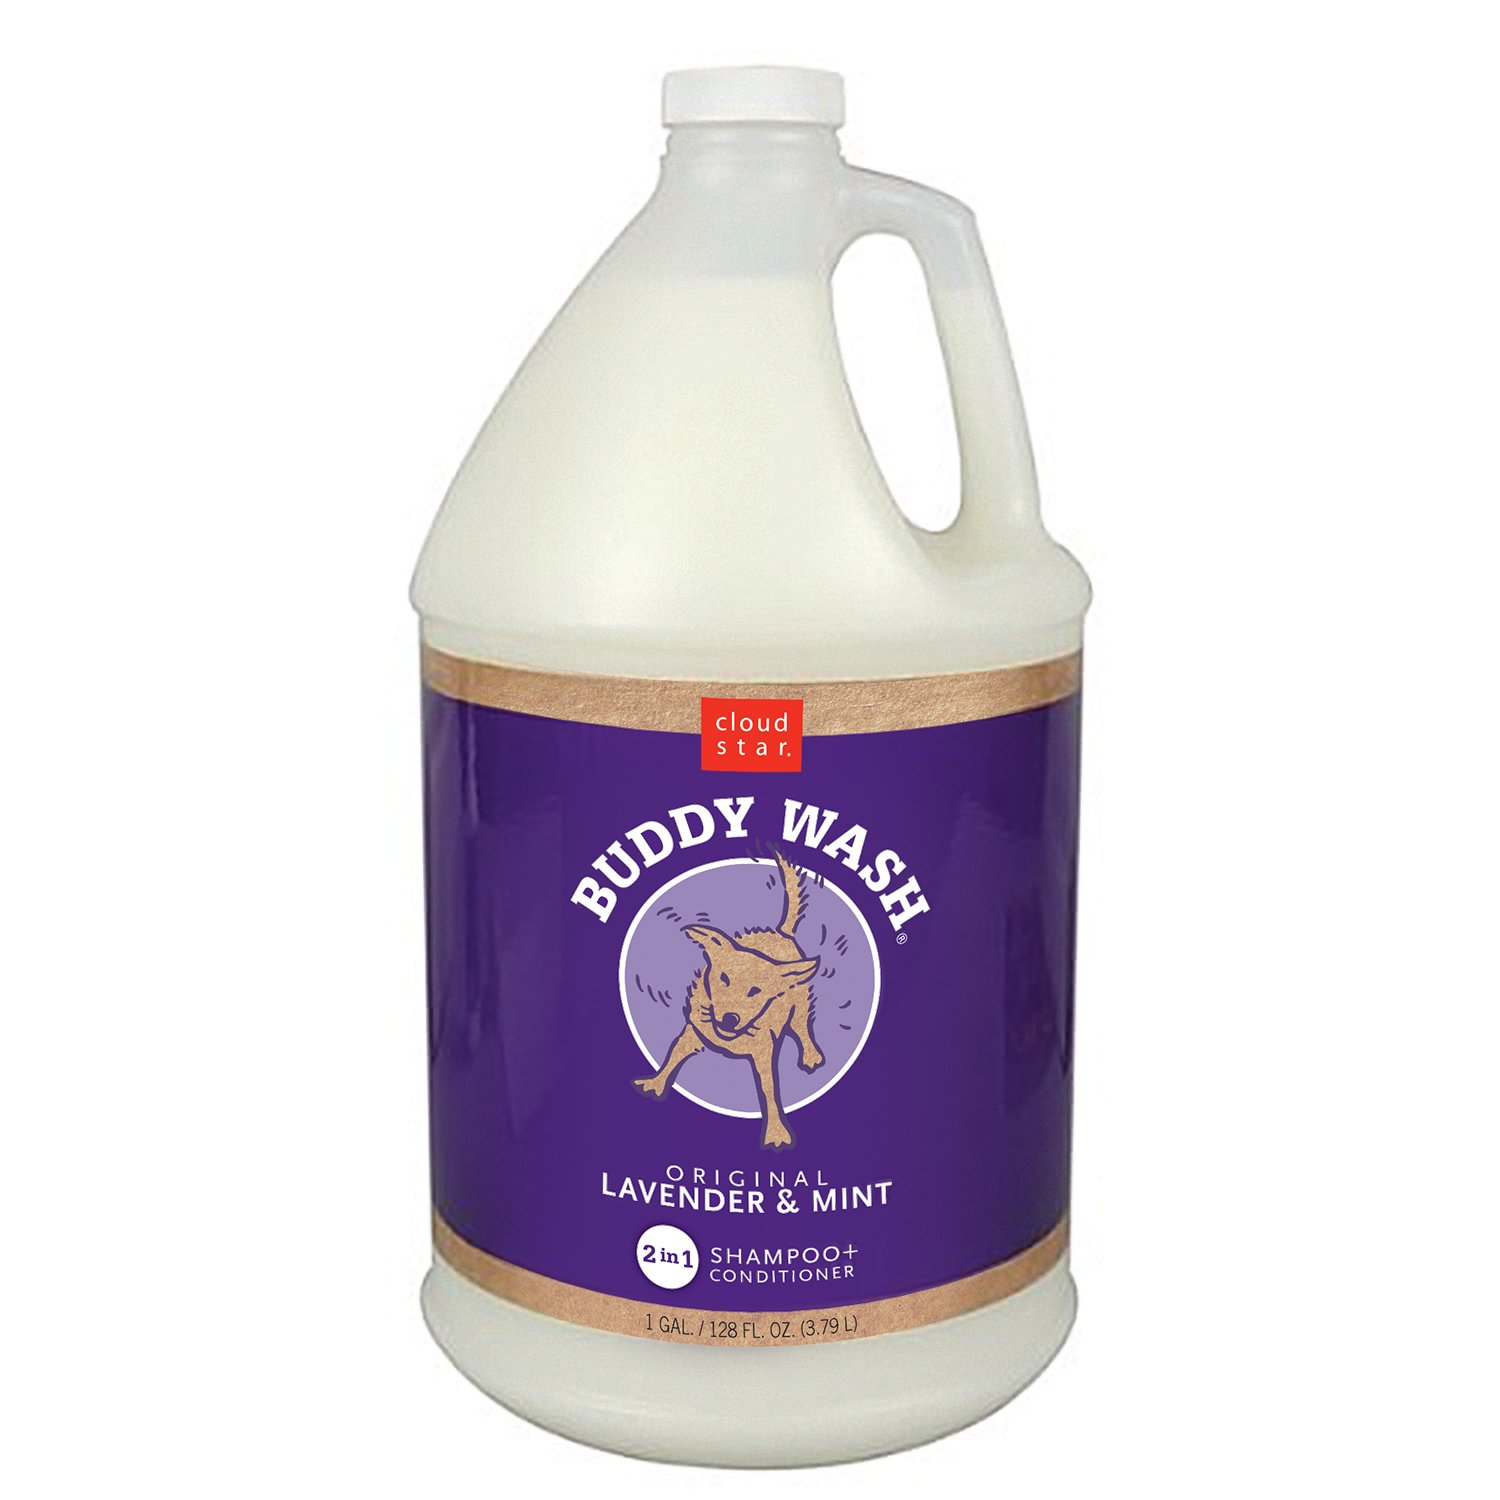 Cloud Star's Buddy Wash Original Lavender & Mint